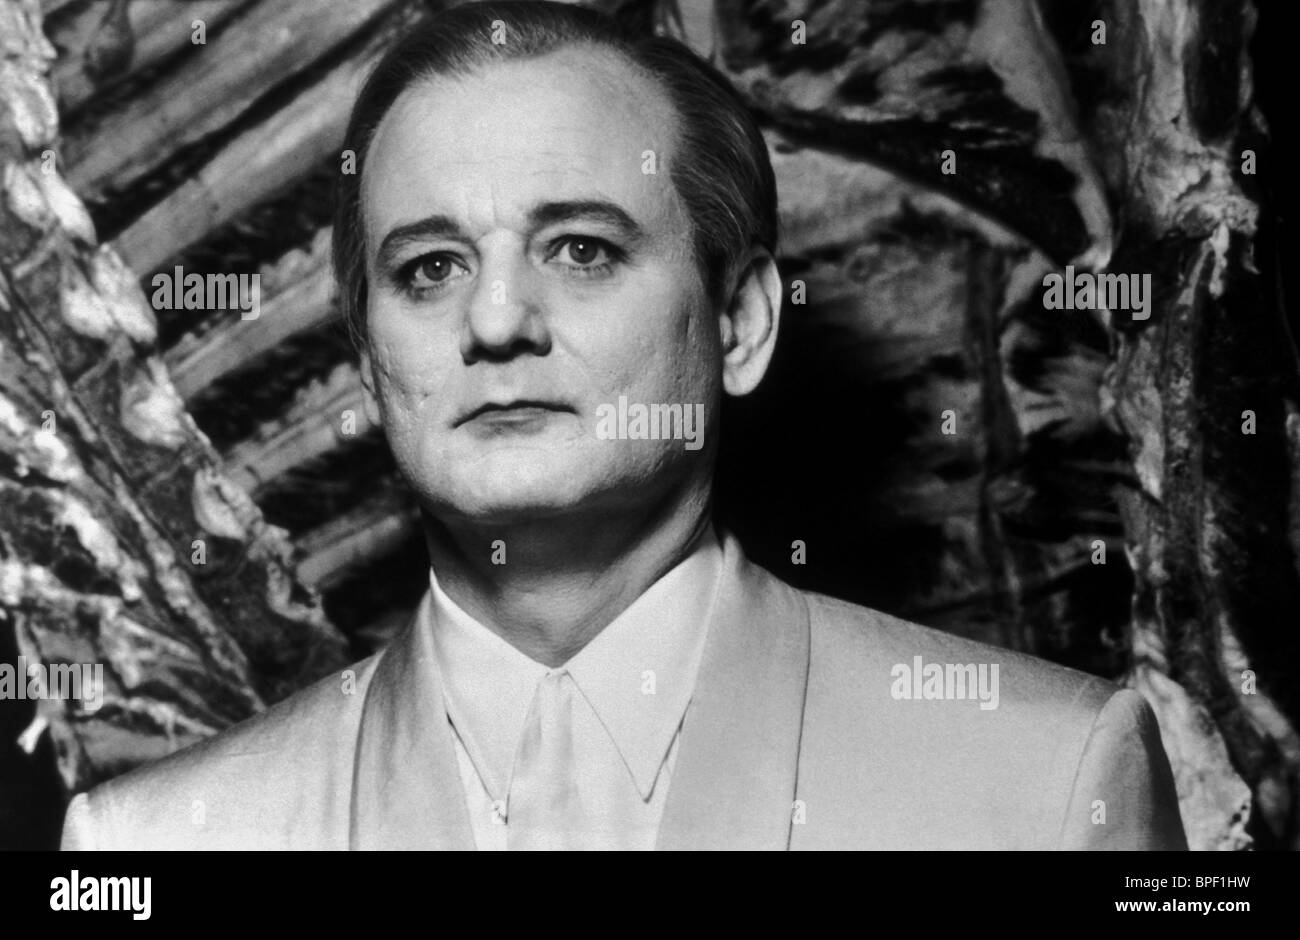 BILL MURRAY ED WOOD (1994) - Stock Image